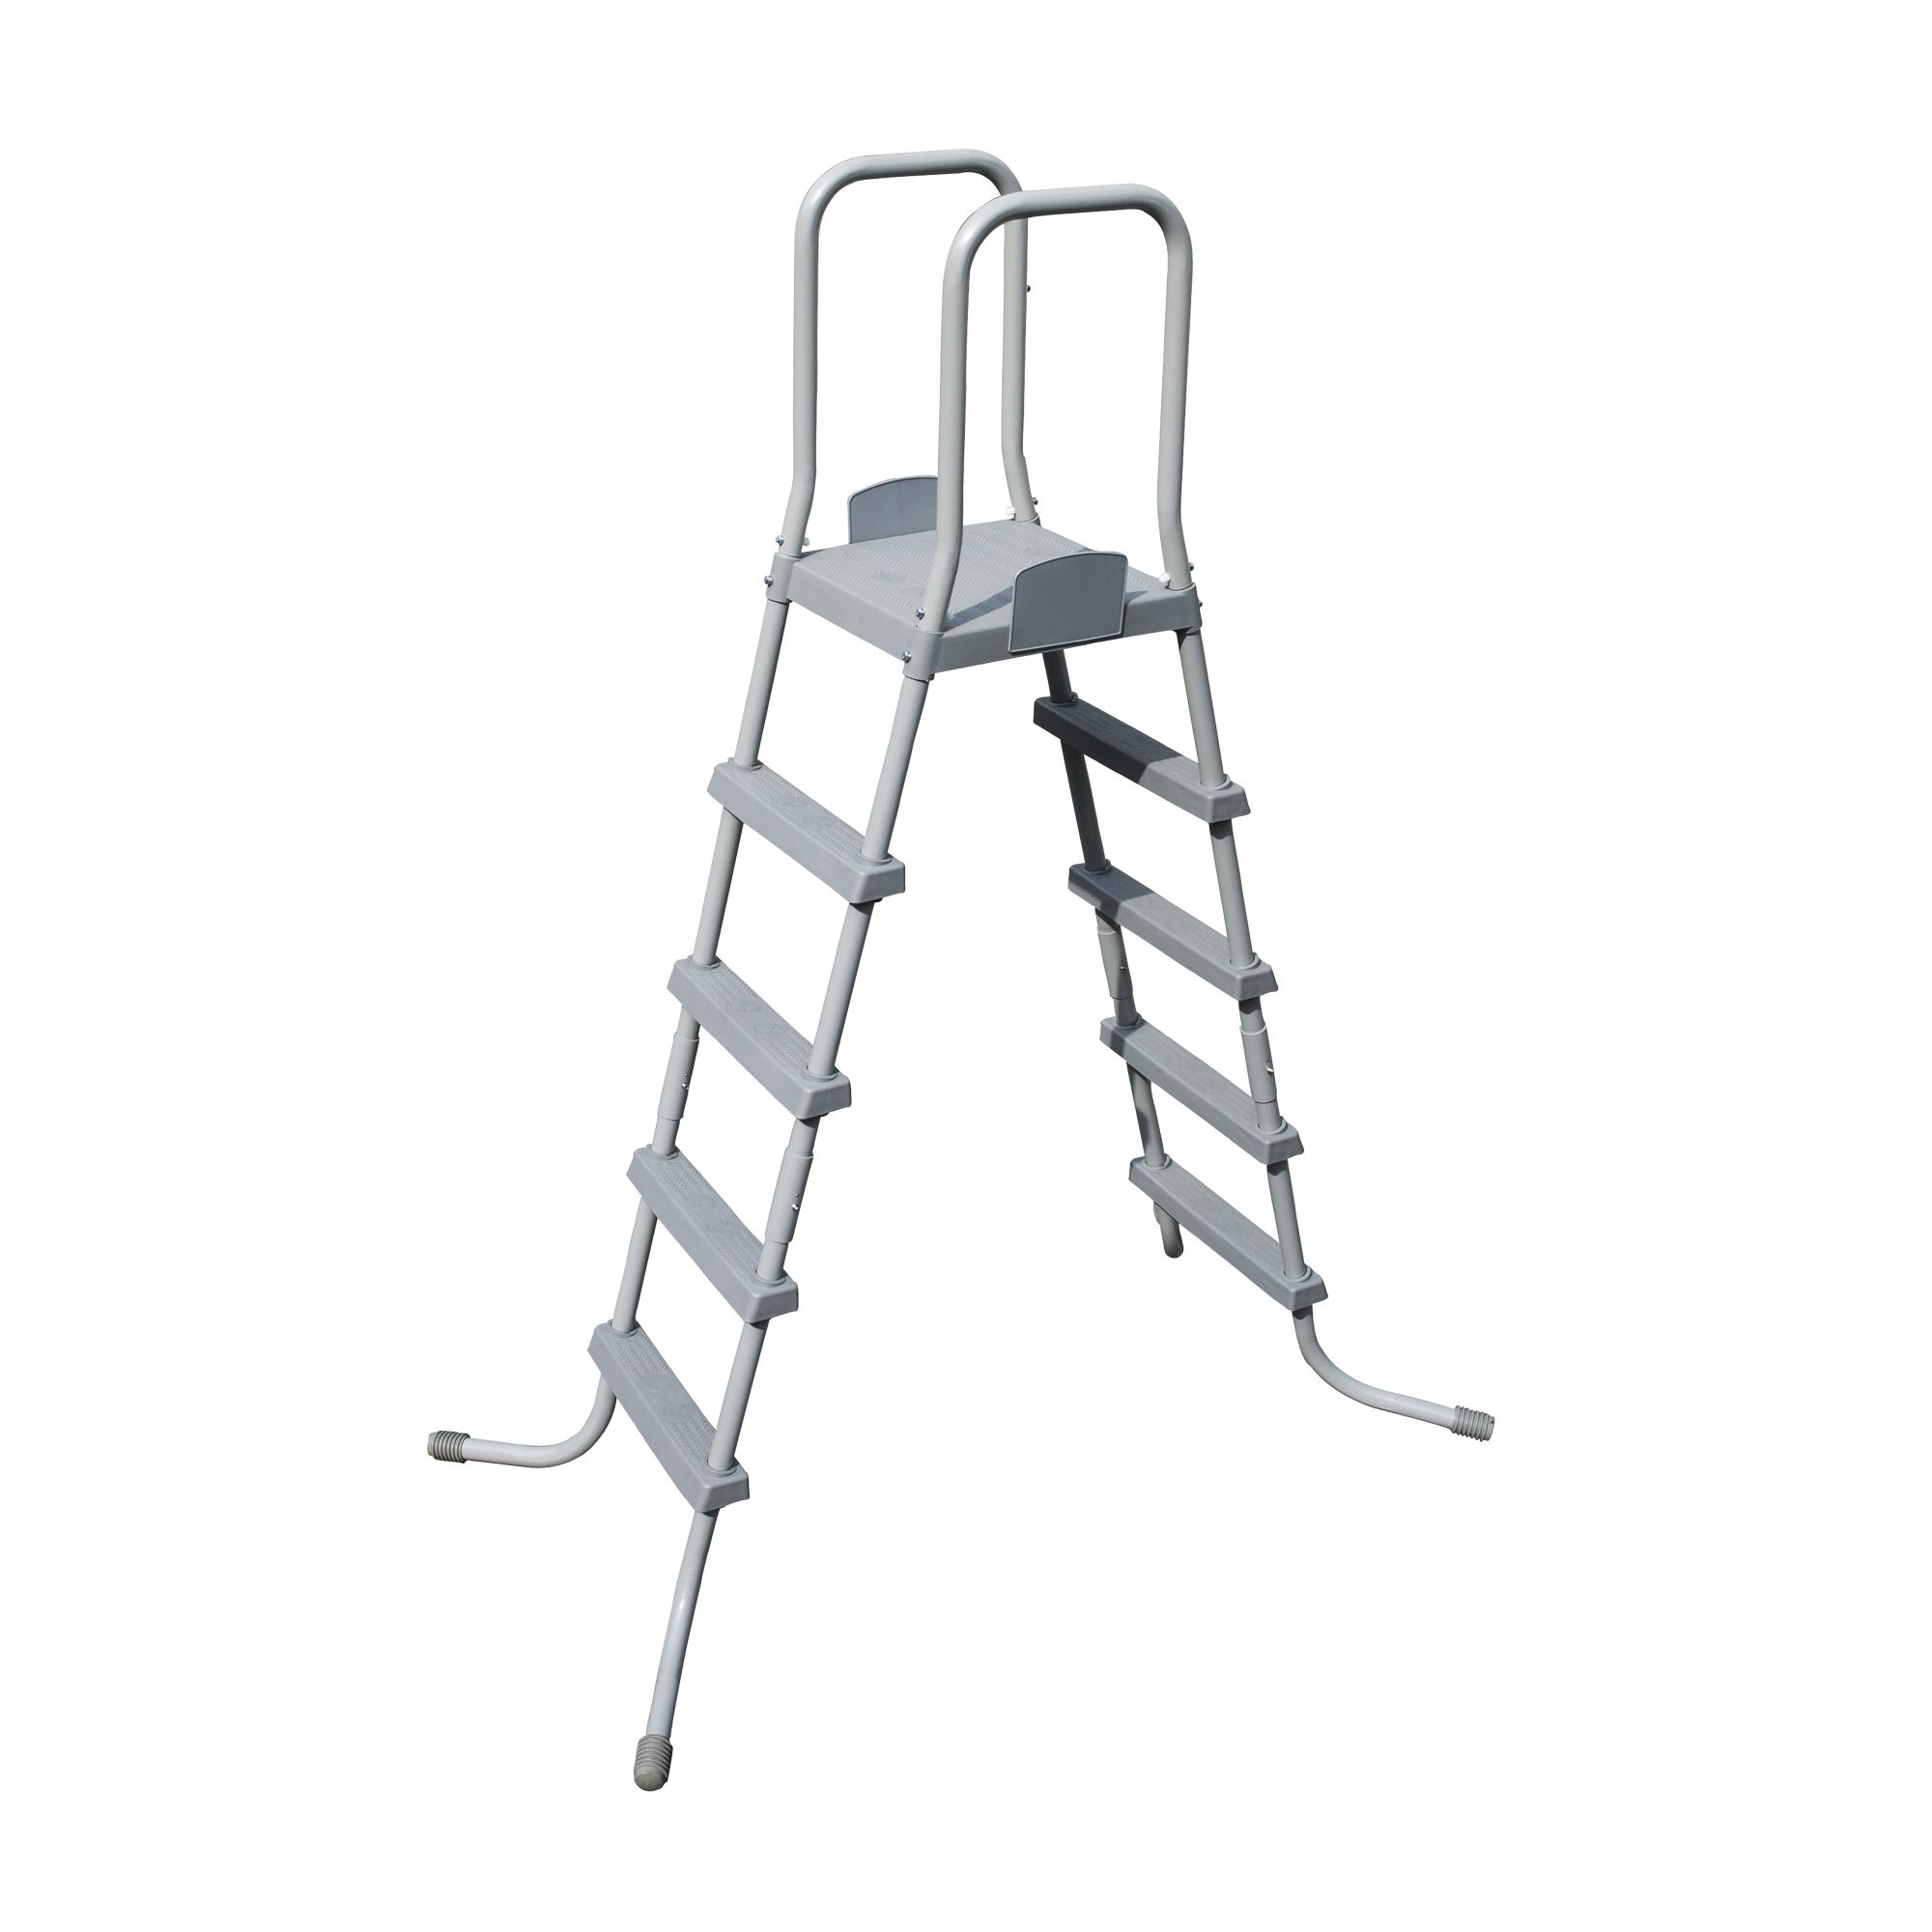 Ladder For Swimming Bestway H 84 Cm